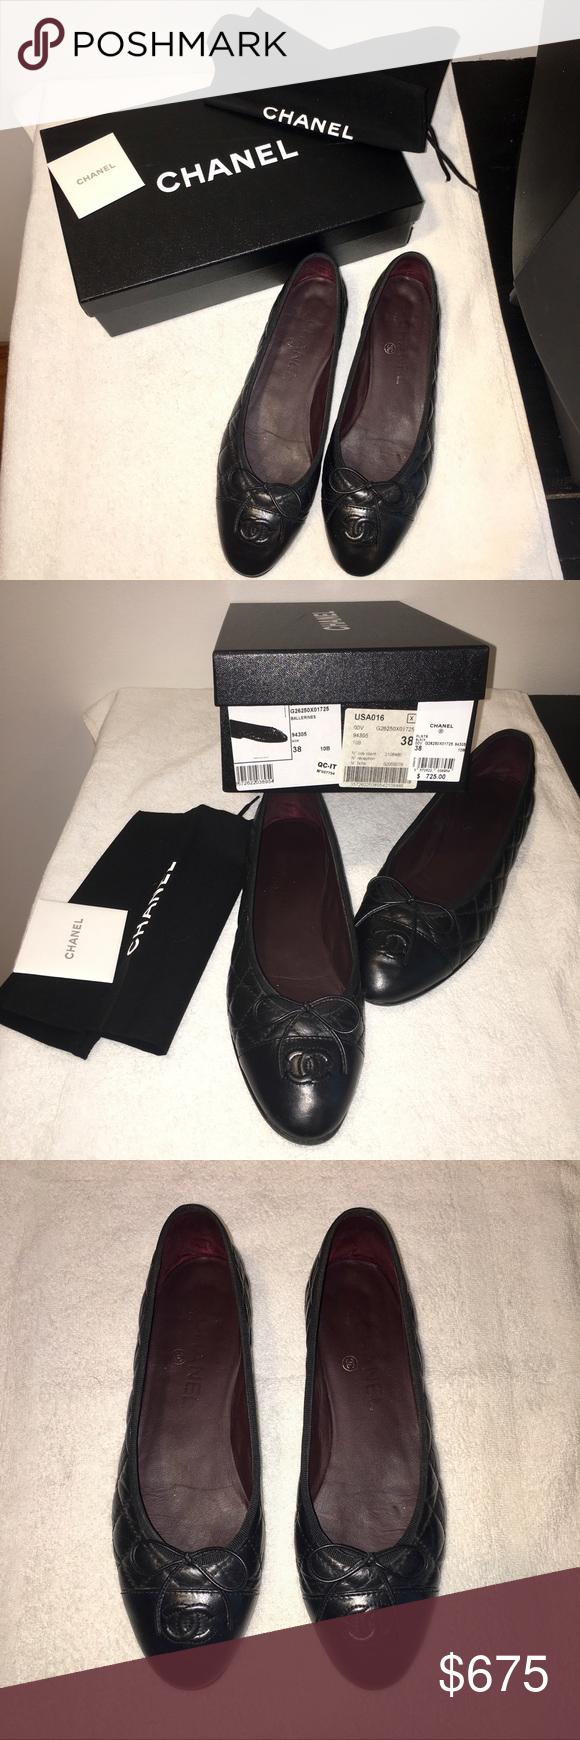 44b411c5cac CHANEL BLACK BALLERINA FLATS SIZE 38 LEATHER. QUILTED. WITH BOX AND DUST  BAG. RESOLED. WORN. CHANEL Shoes Flats   Loafers